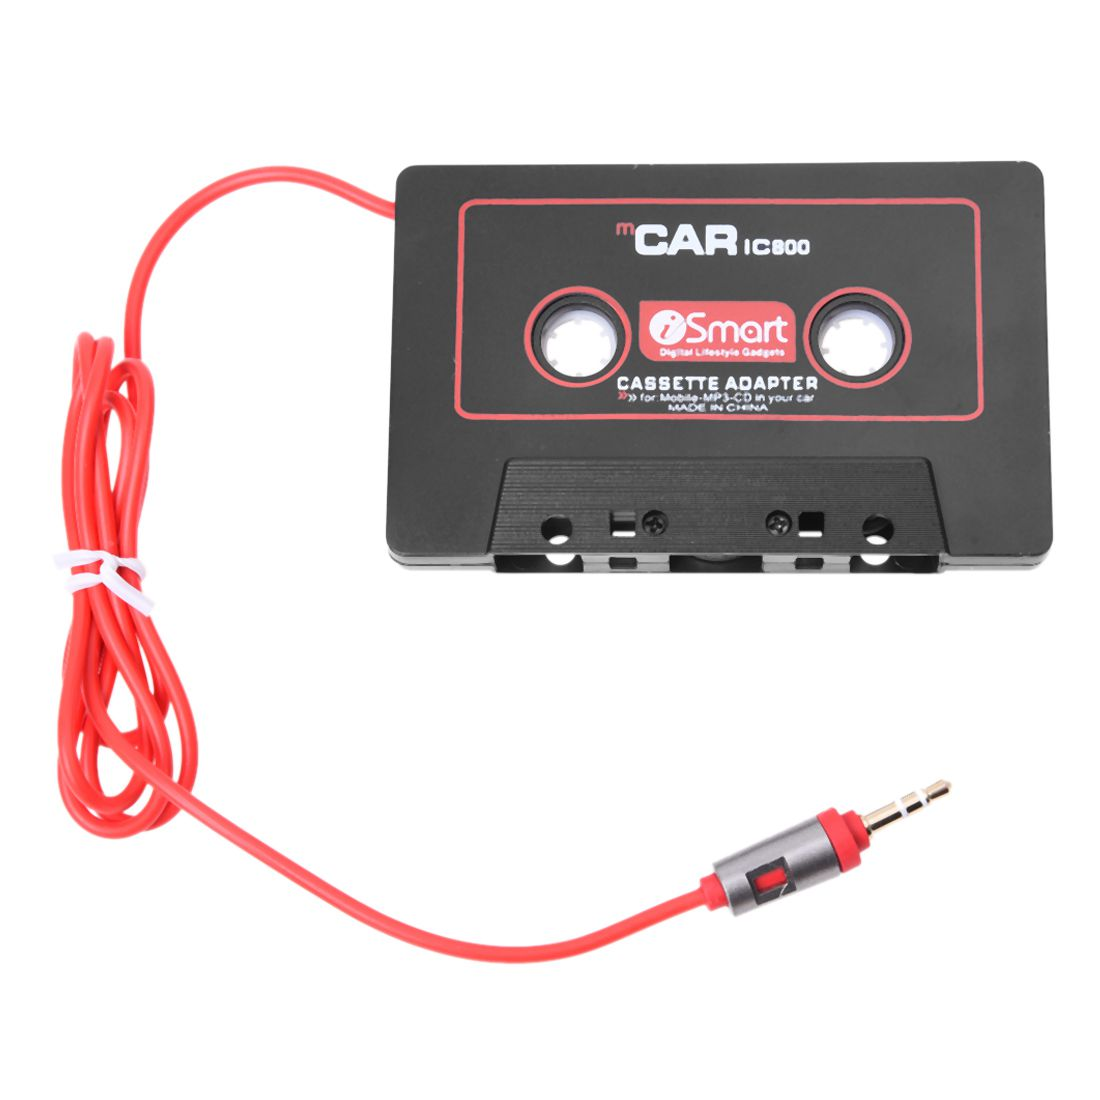 Top Deals Car Audio Systems Car Stereo Cassette Tape